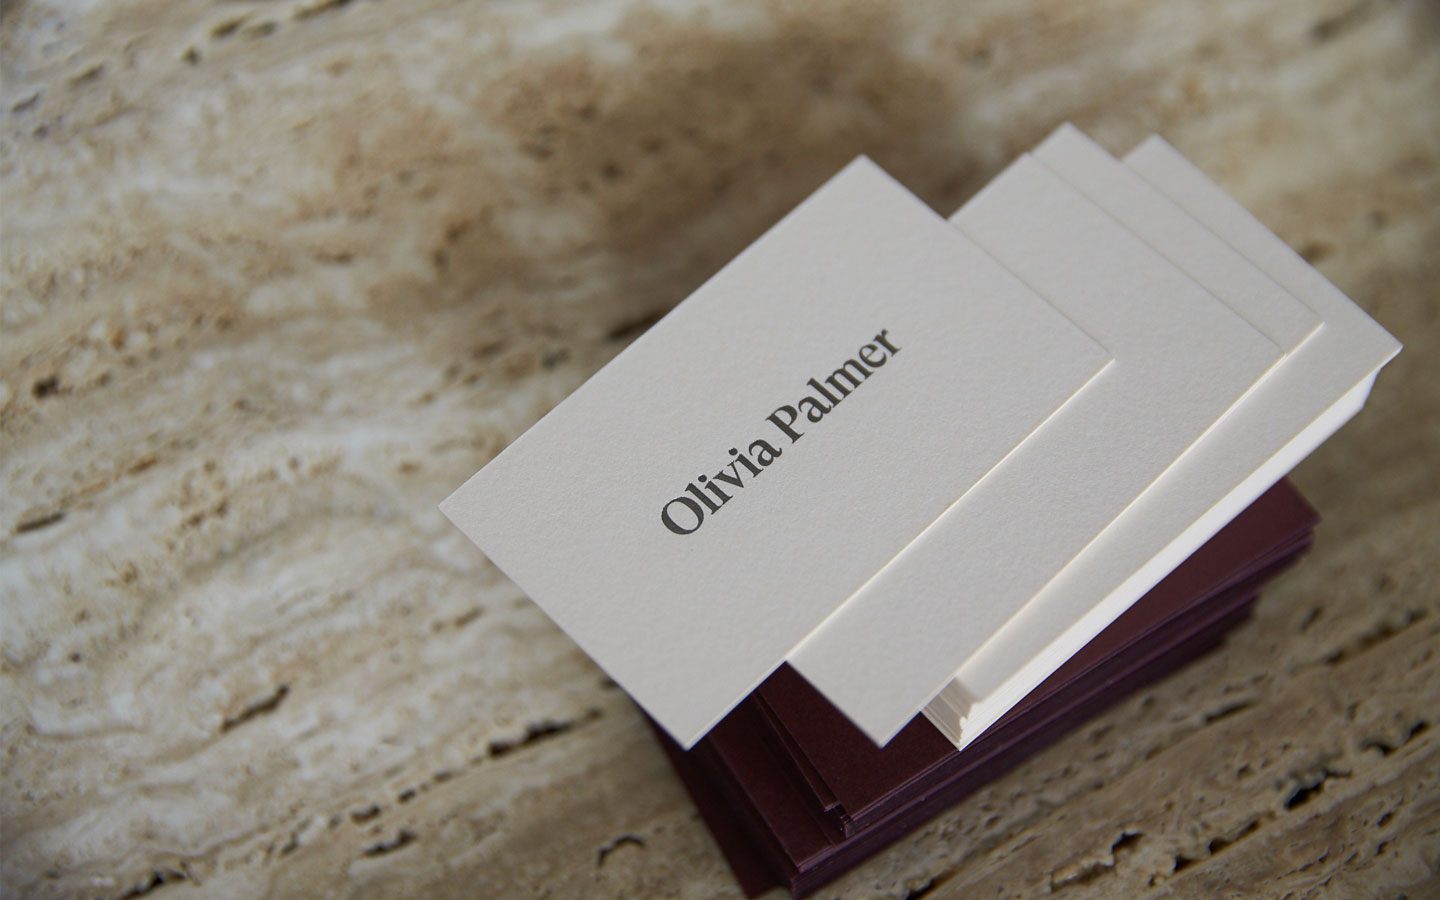 OliviaPalmer_About_Stationery_whitevellum_gunmetalfoil_business_cards.jpg